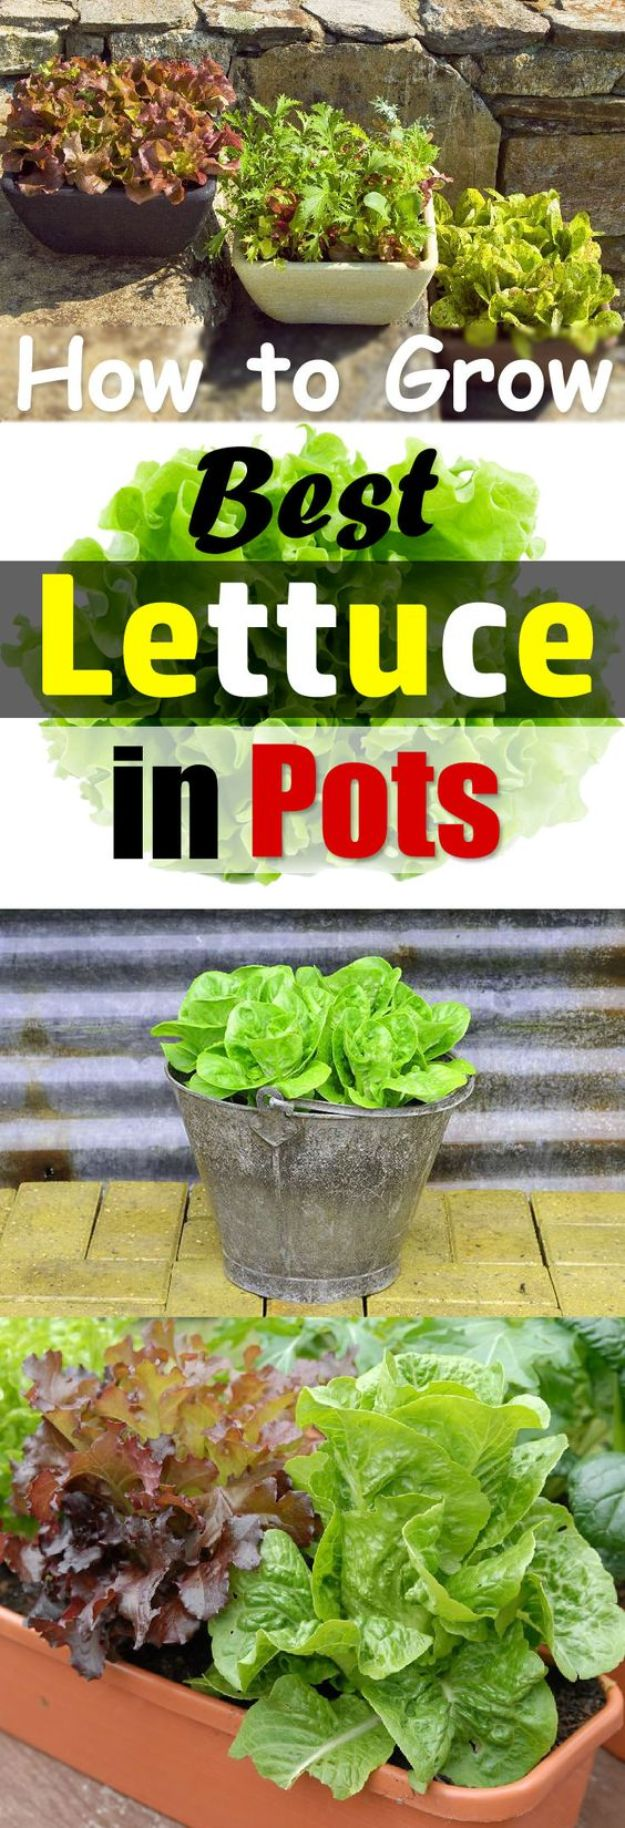 Container Gardening Ideas - Growing Lettuce In Containers - Easy Garden Projects for Containers and Growing Plants in Small Spaces - DIY Potting Tips and Planter Boxes for Vegetables, Herbs and Flowers - Simple Ideas for Beginners -Shade, Full Sun, Pation and Yard Landscape Idea tutorials http://diyjoy.com/container-gardening-ideas